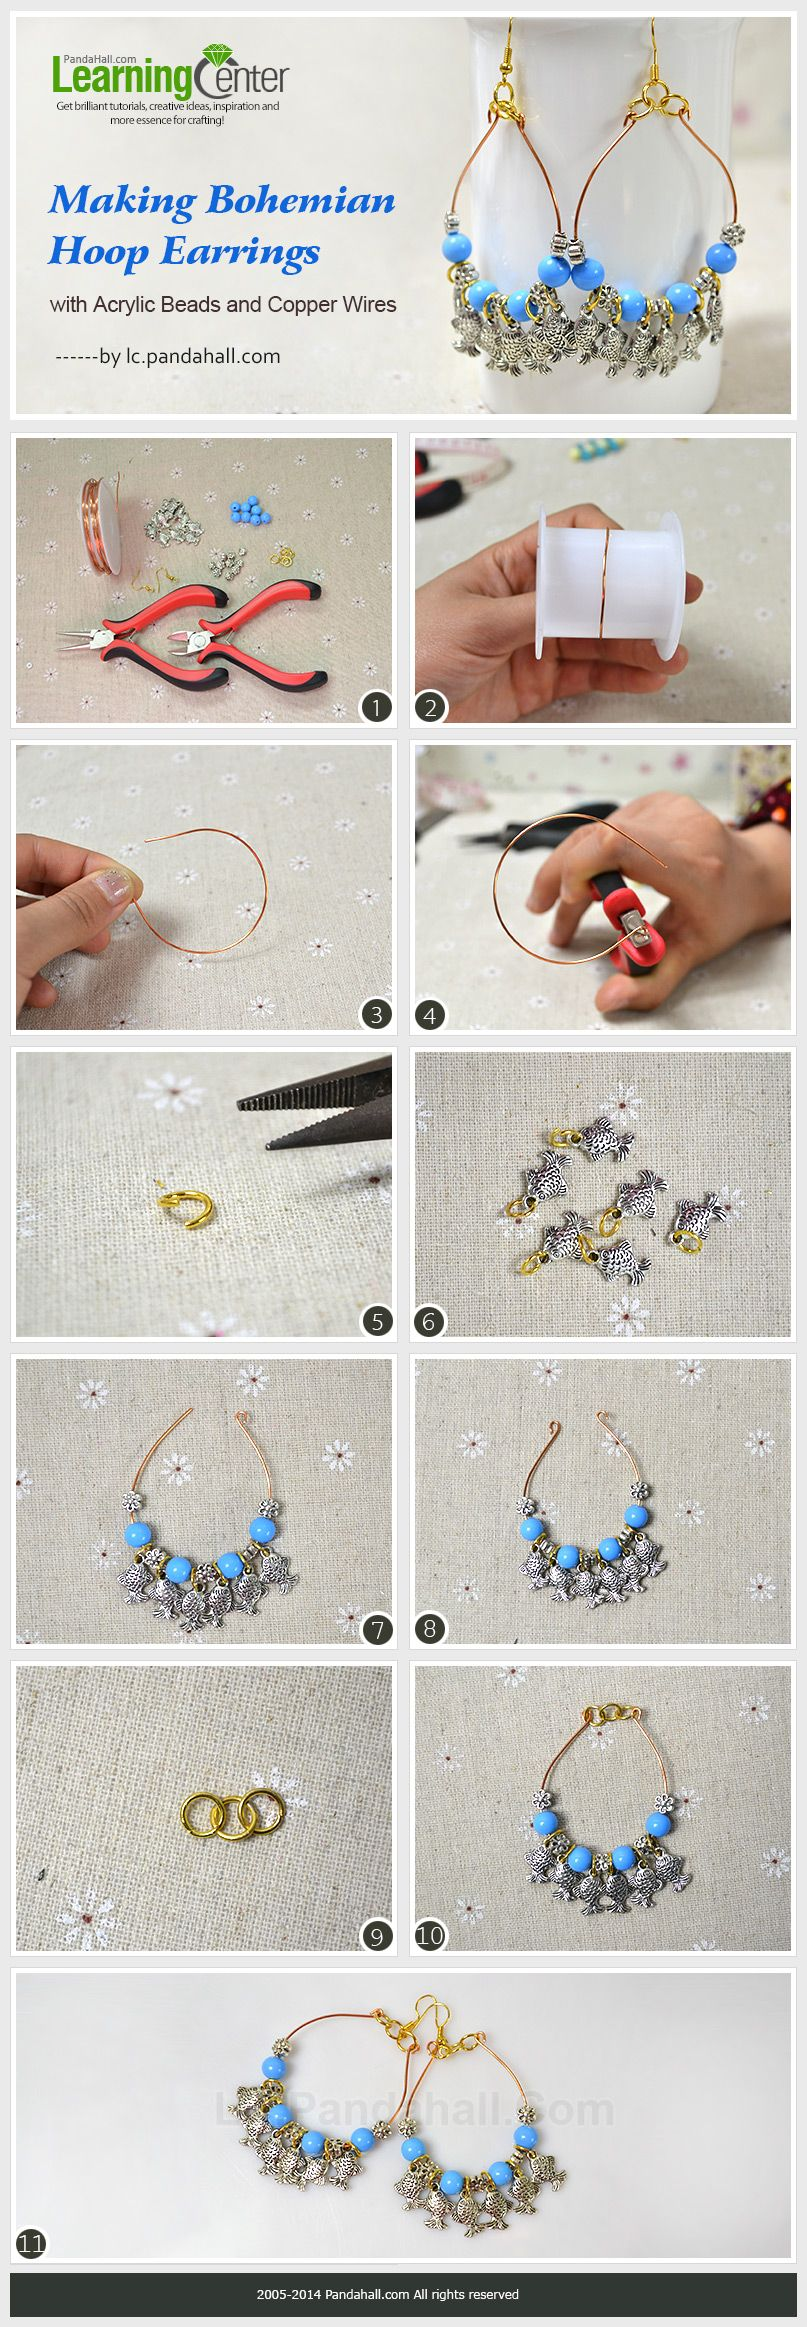 Making Bohemian Hoop Earrings with Acrylic Beads and Copper Wires ...